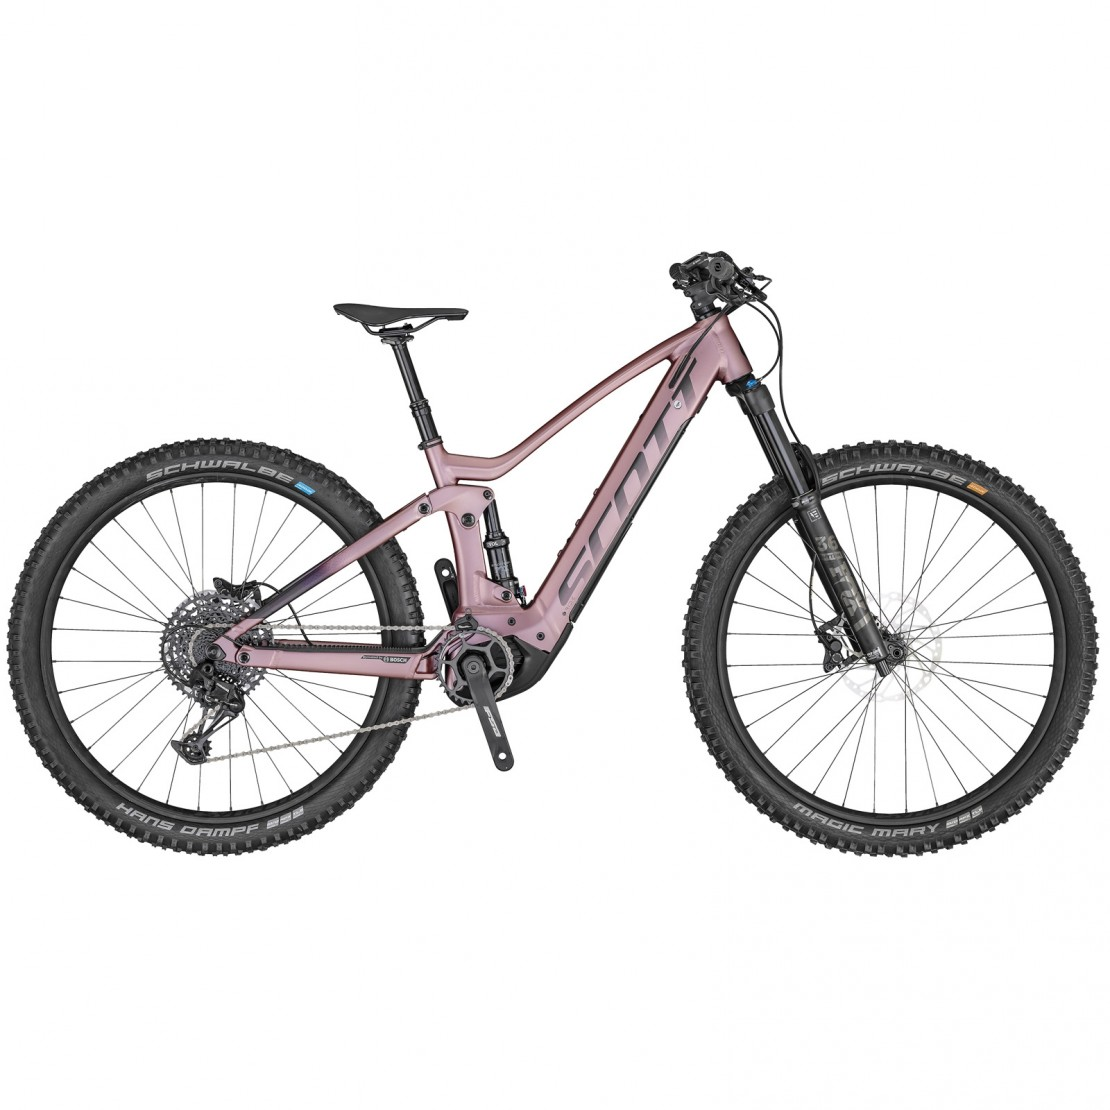 Scott Contessa Genius eRide 910 2020 - Ladies Electric Bike